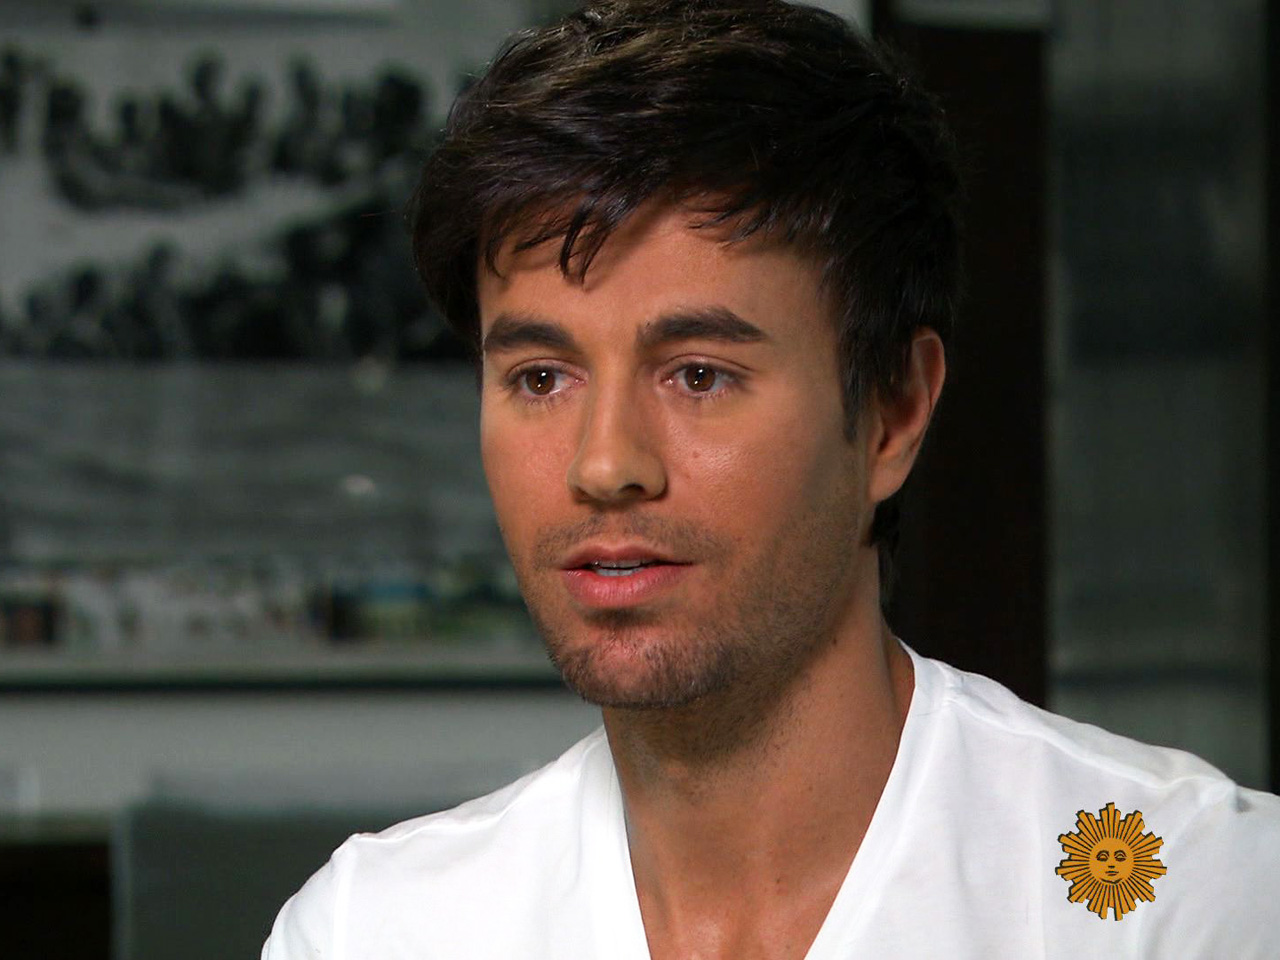 enrique iglesias max hero sm singer father music cbs superstar songwriter stepped grammy winning shadow become famous